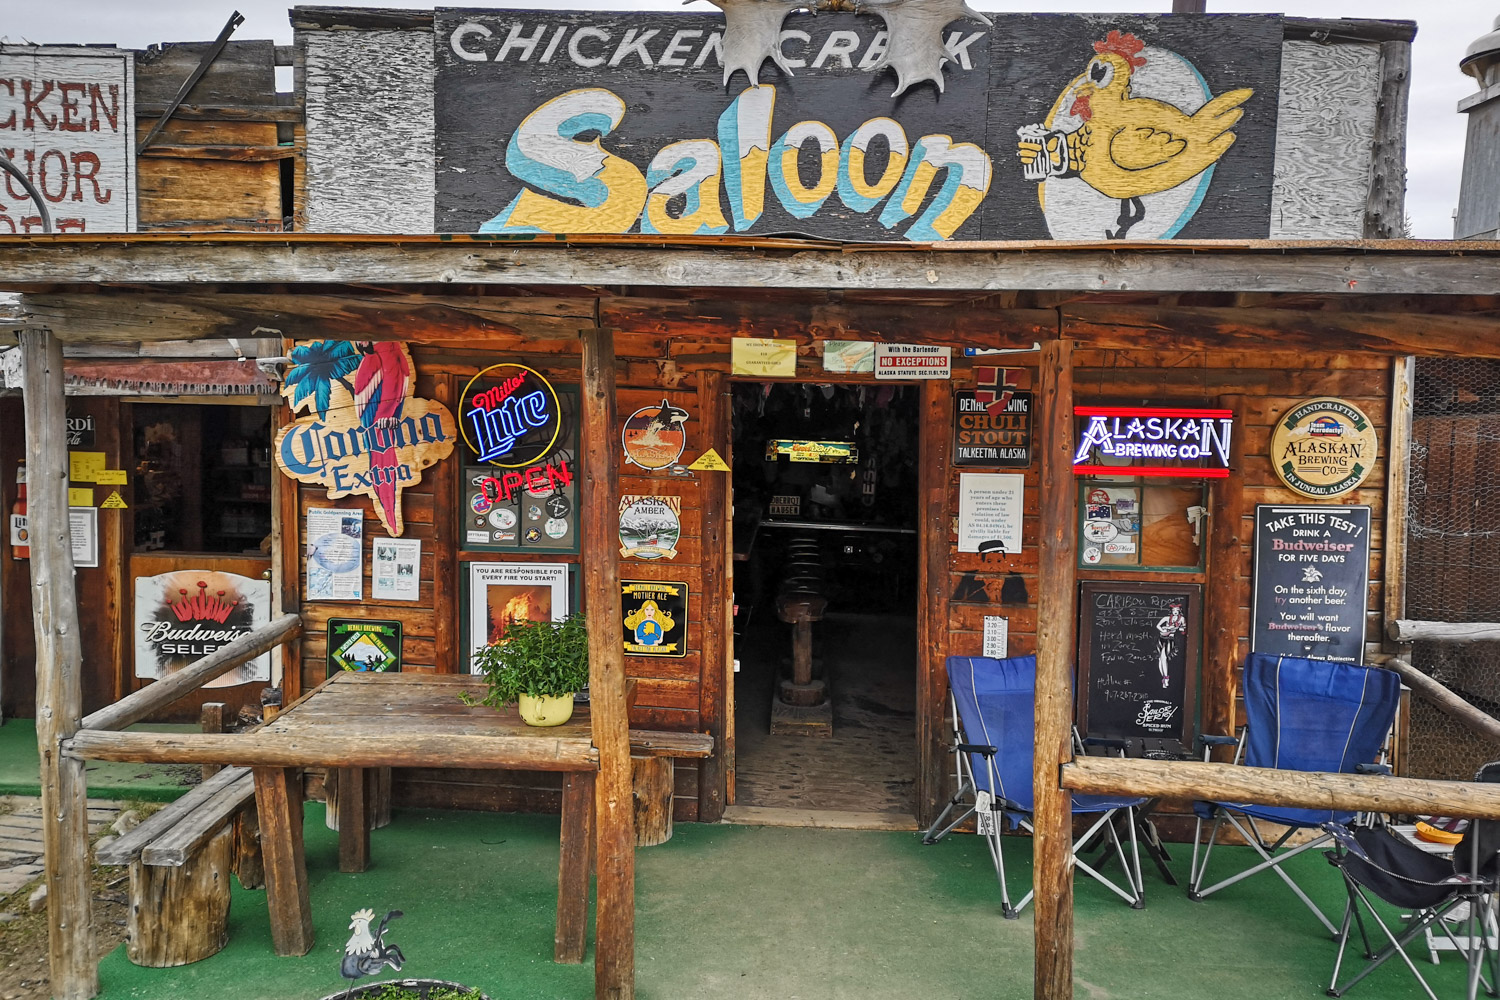 Chicken Creek Saloon